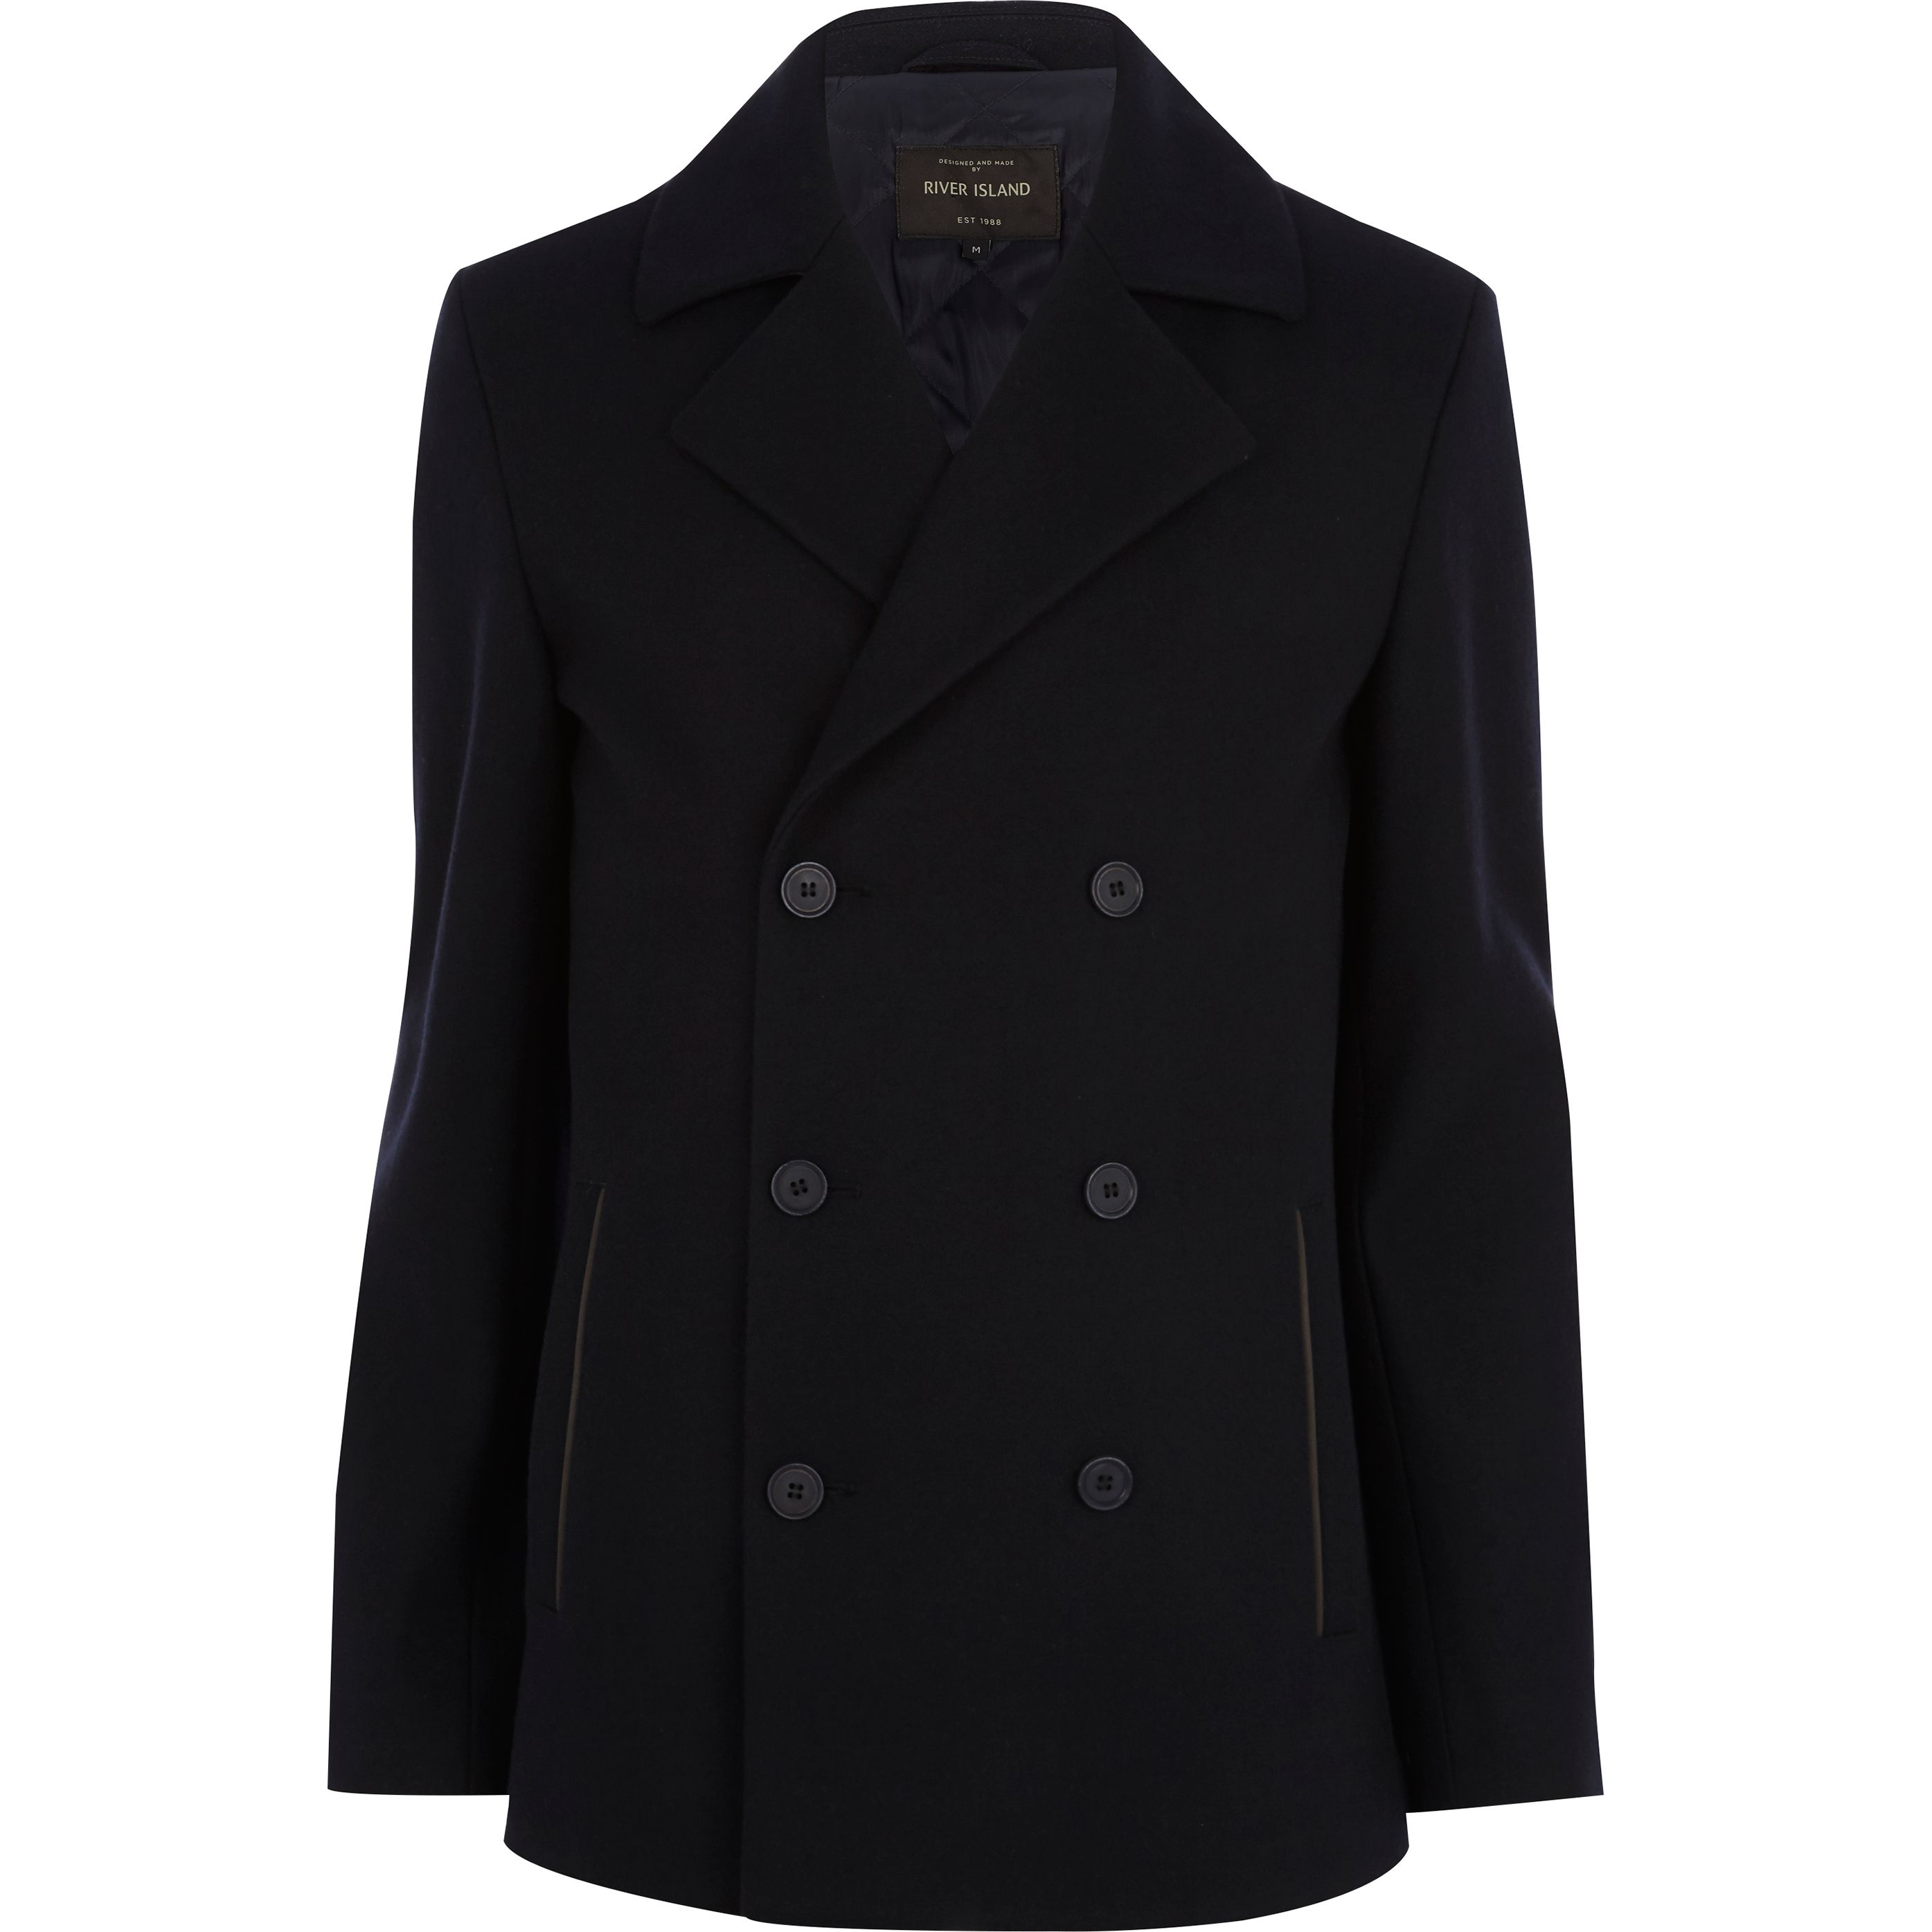 Navy Wool Blend Pea Coat €110 at River Island